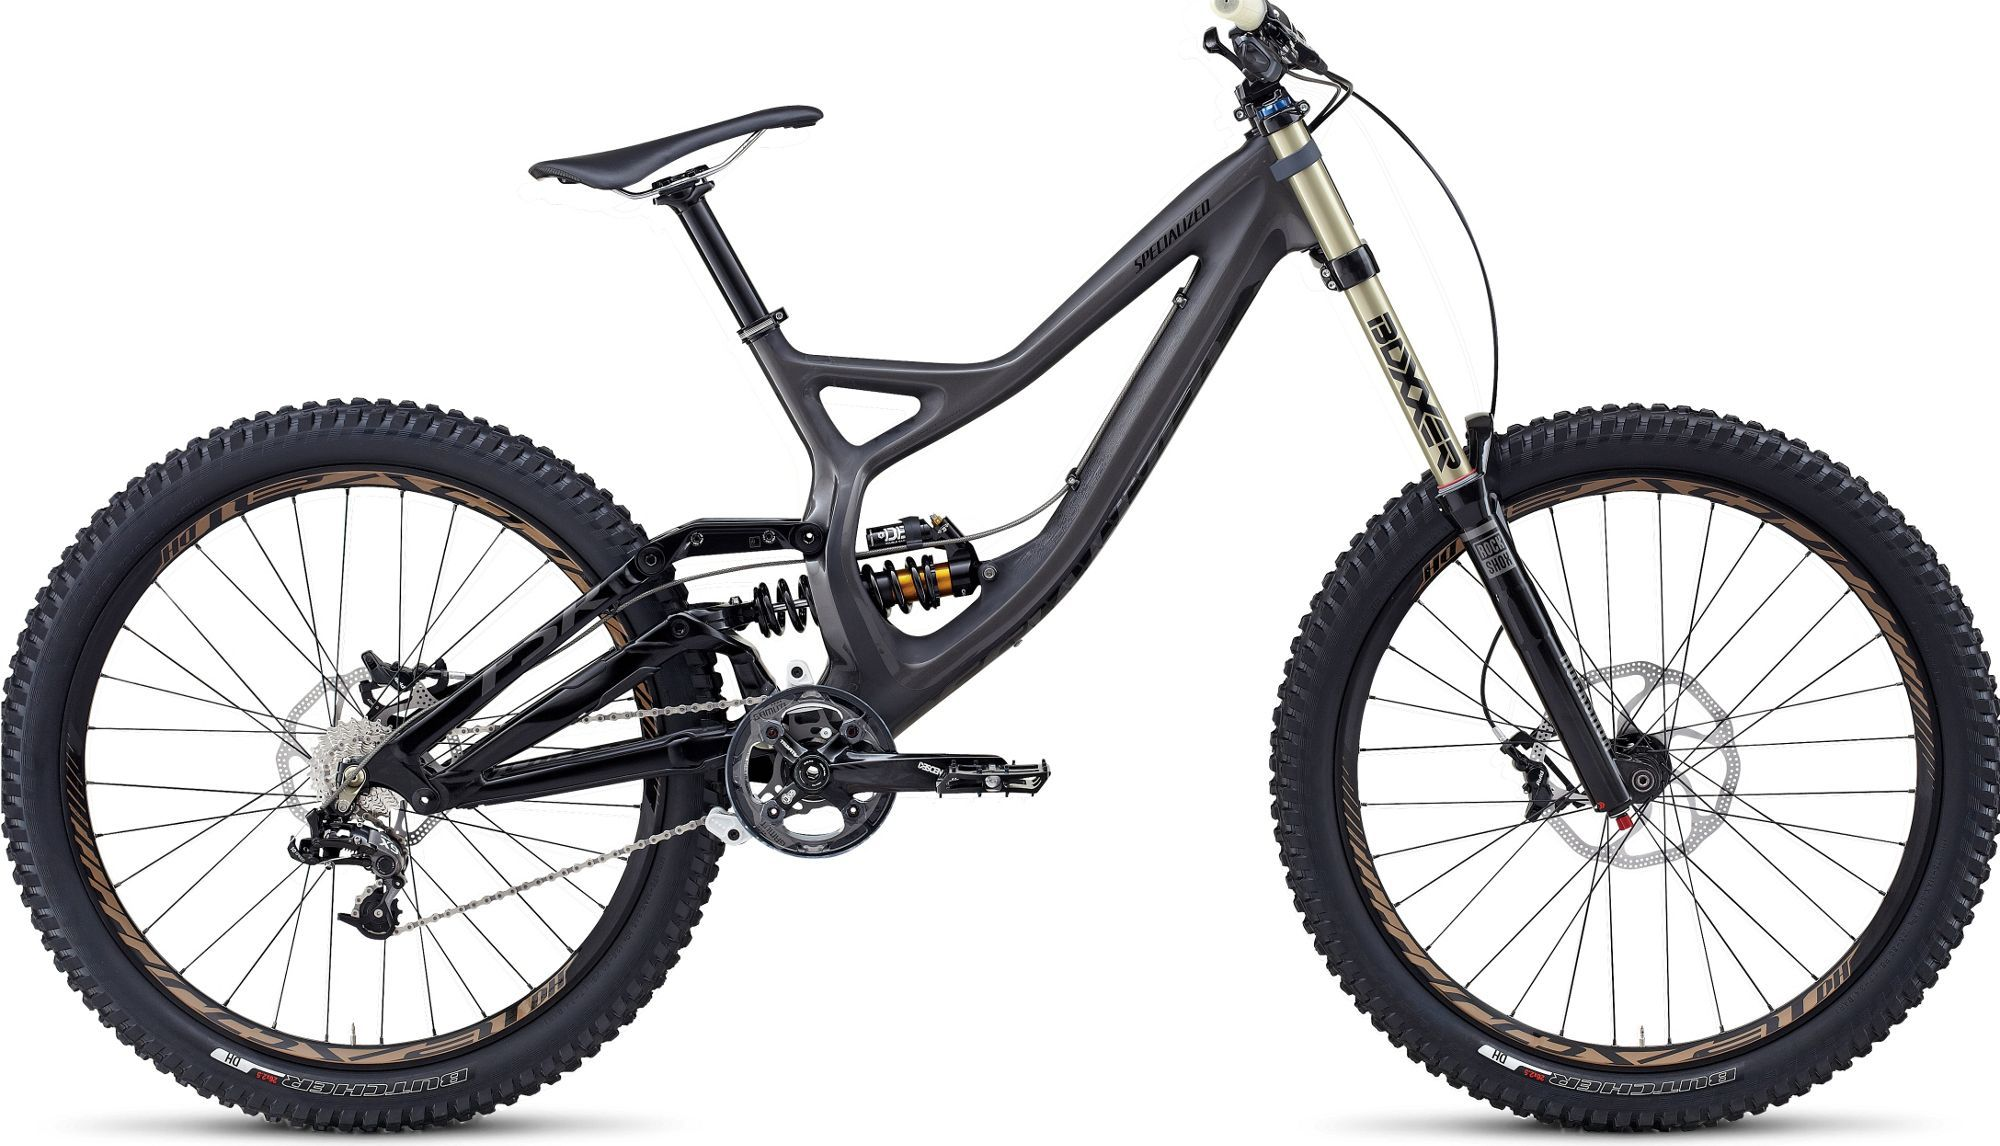 http://www.thebikelist.co.uk/images/models/Specialized/2014/demo-8-i-carbon/Main.jpg